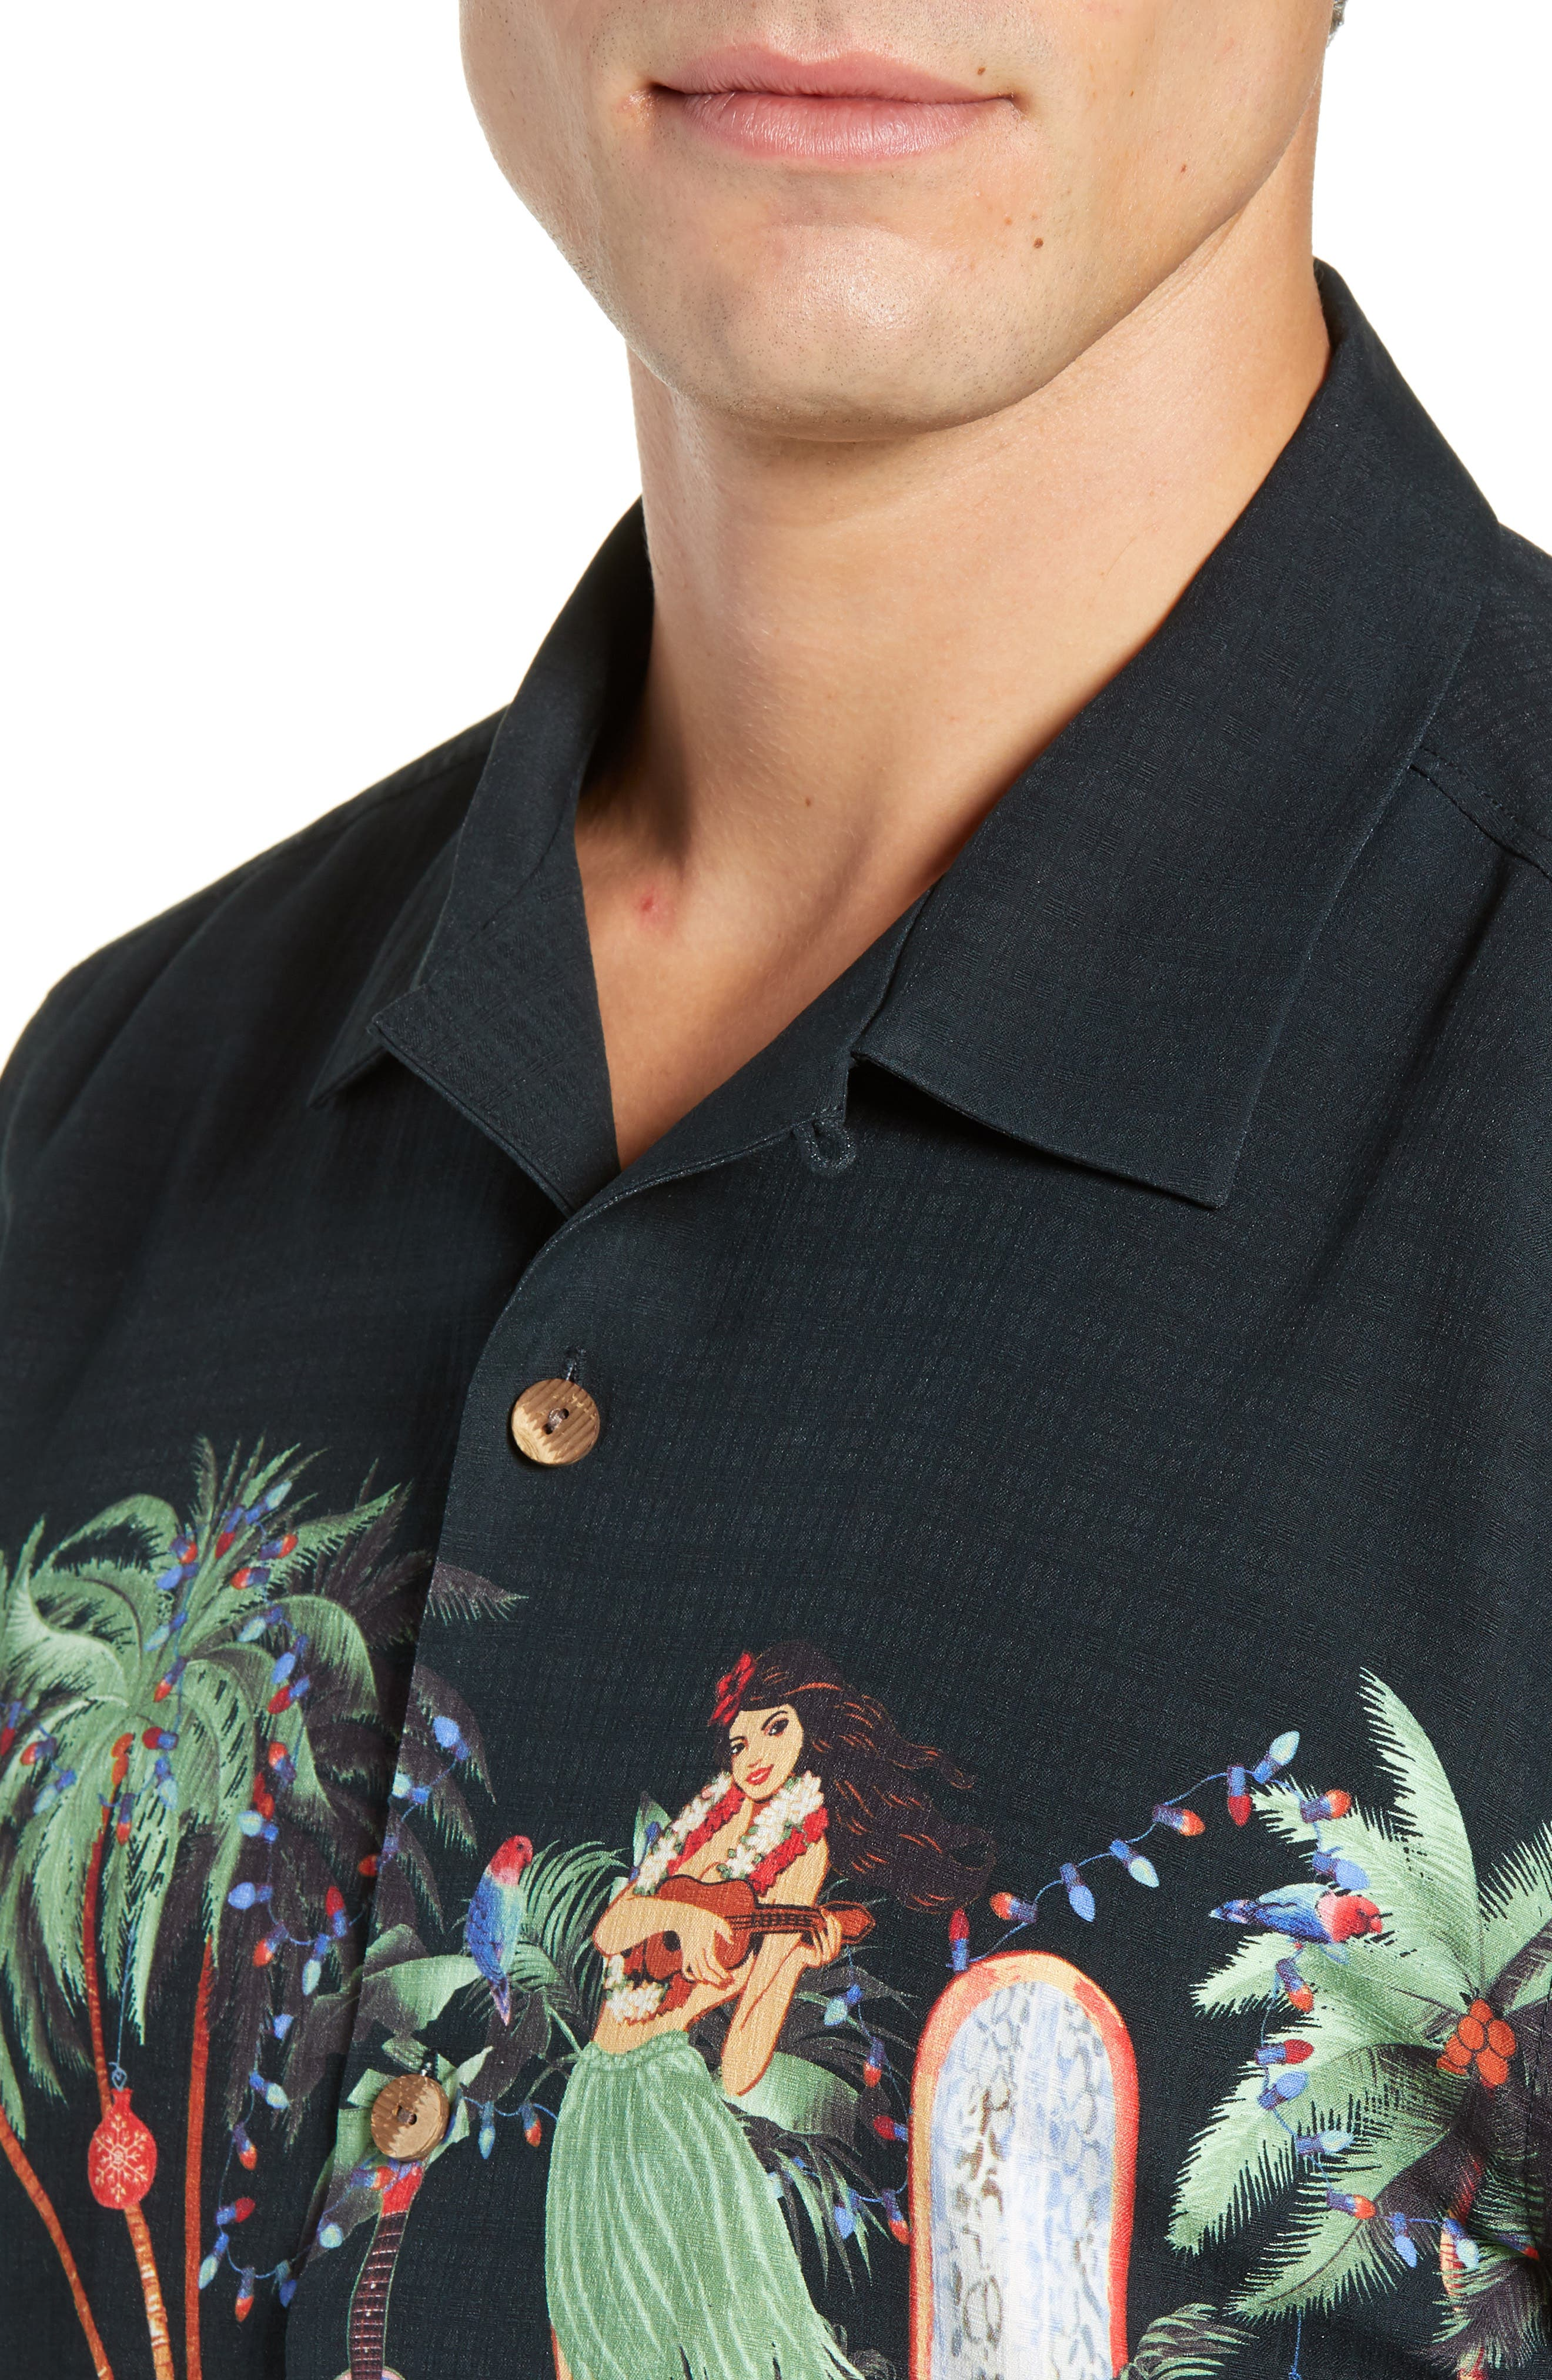 TOMMY BAHAMA, Mele Kalikimaka Silk Camp Shirt, Alternate thumbnail 2, color, 001